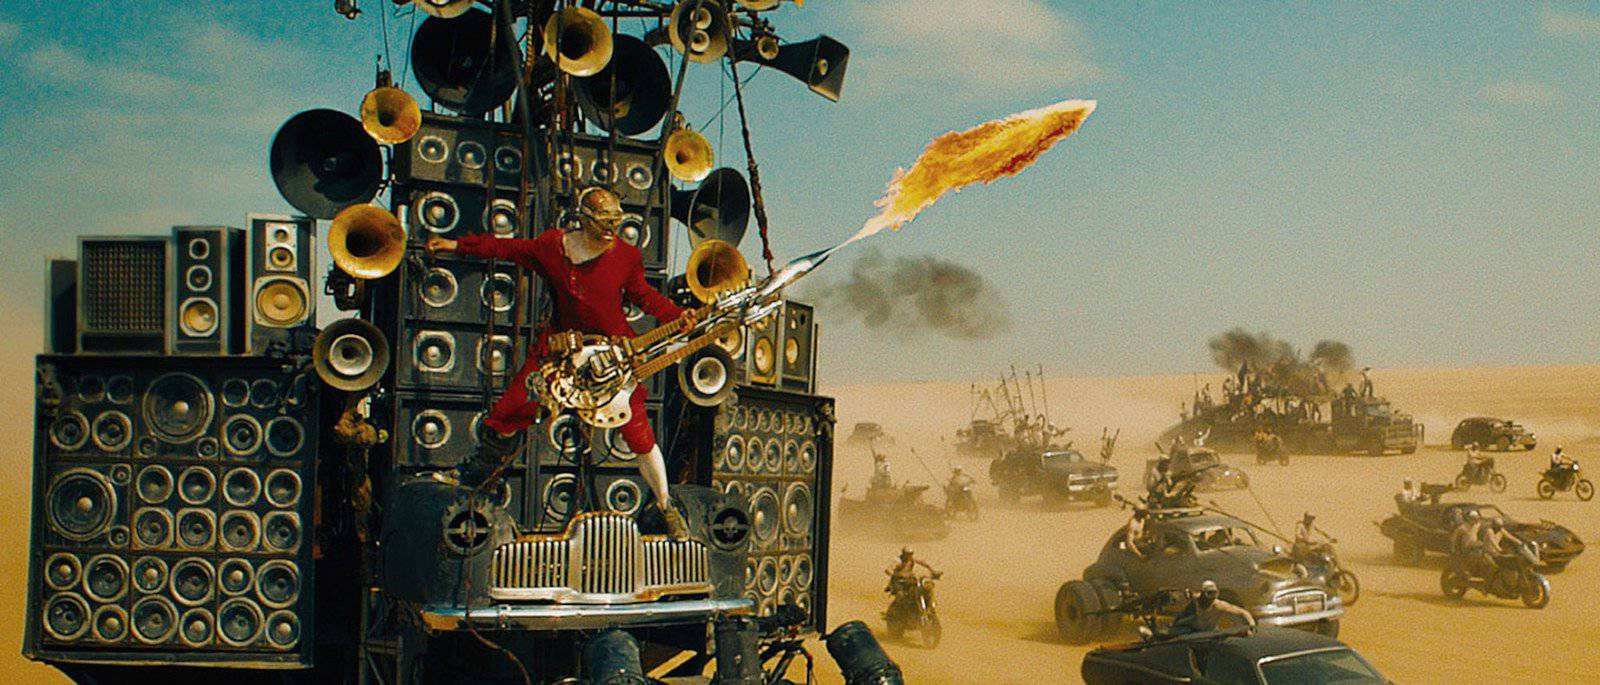 George Miller Offers Details On Potential Mad Max: Fury Road Sequel